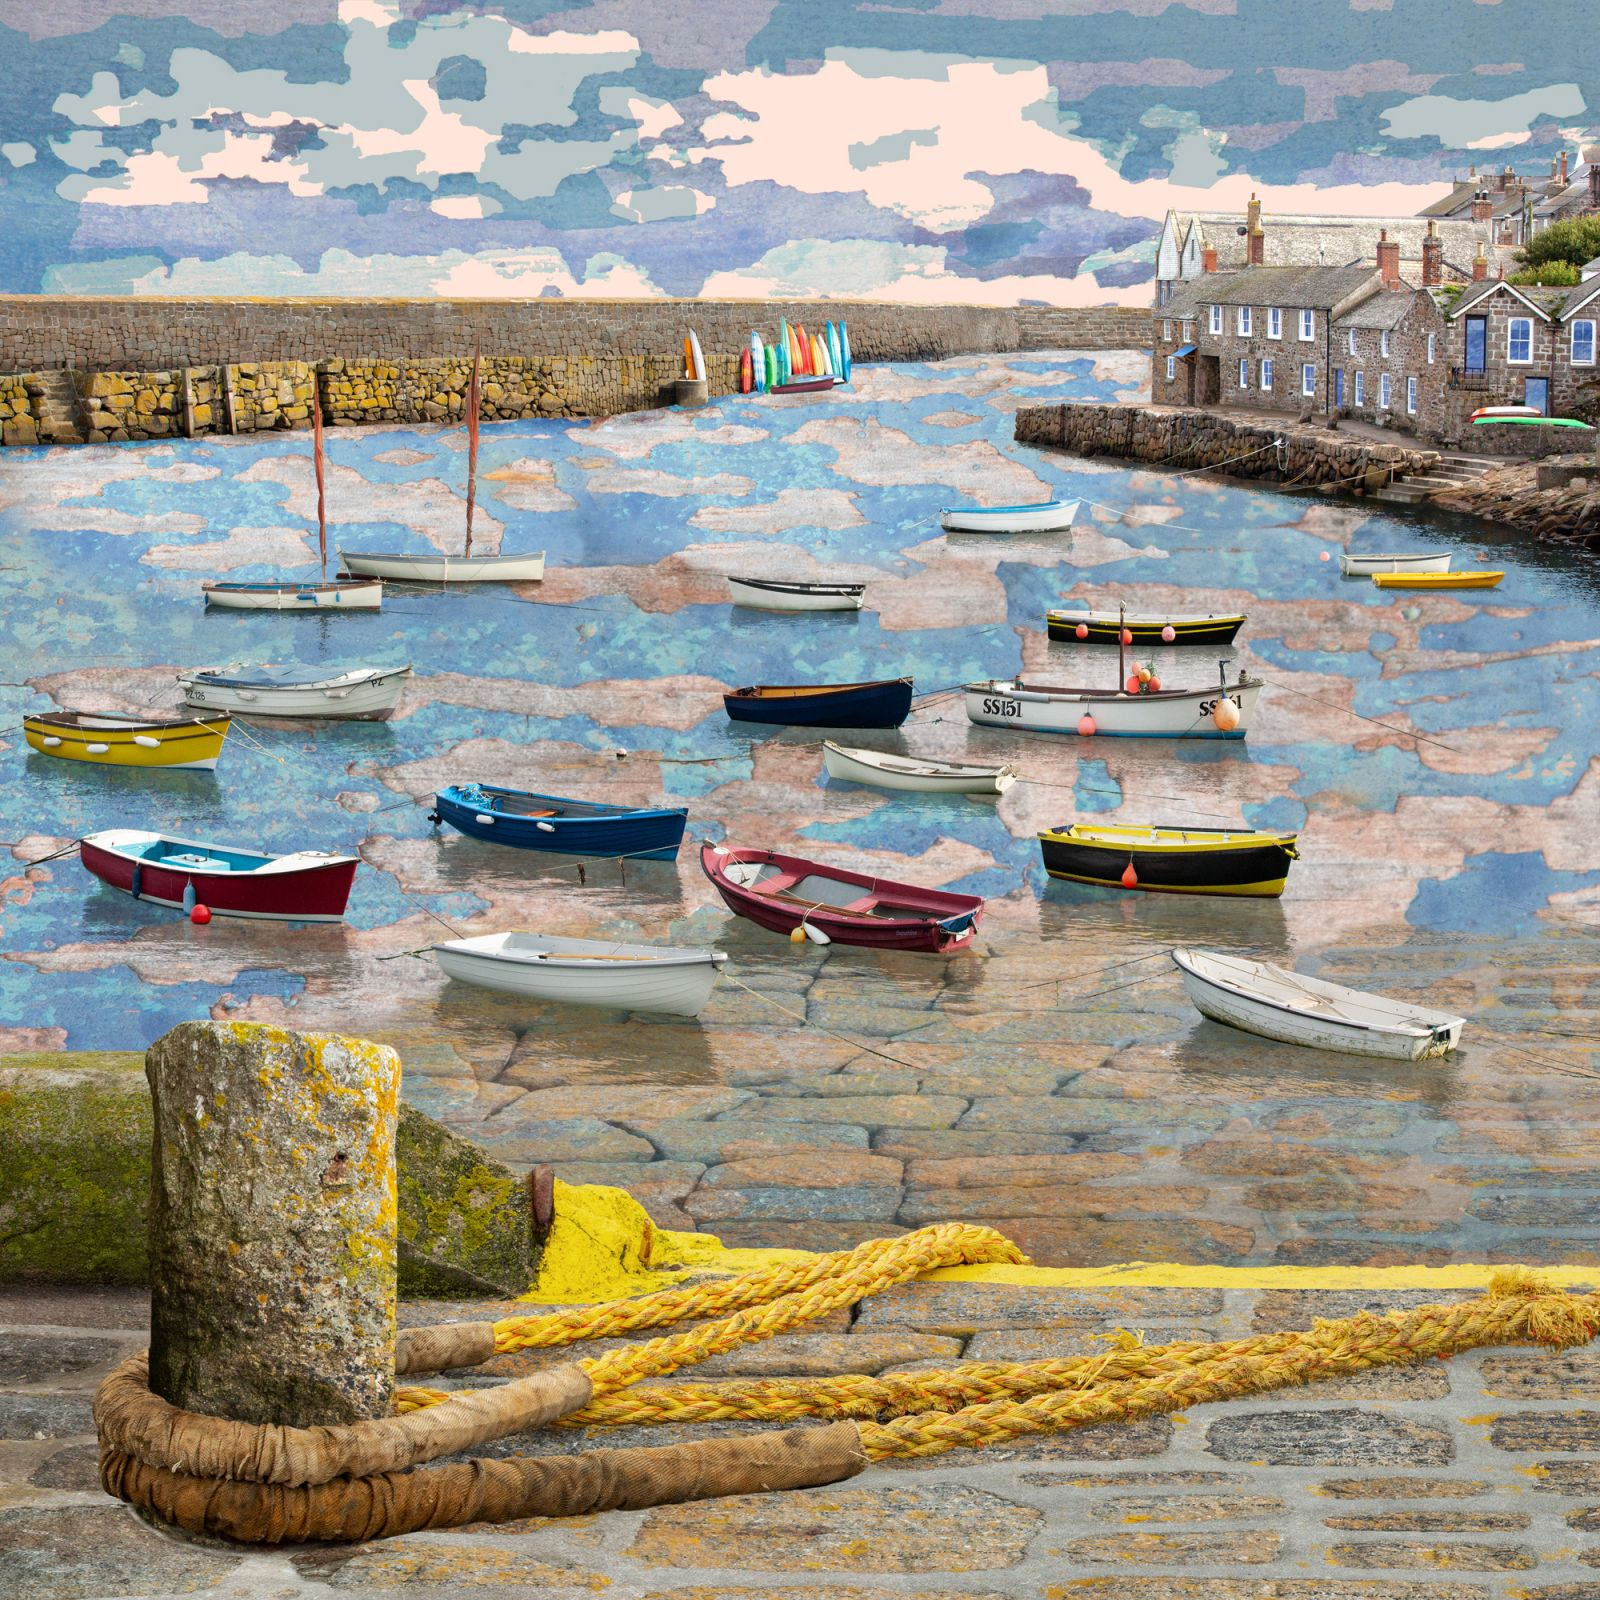 Claire Gill Artist, fine art card, greeting card, limited edition print, hahnemuhle, buy art, collect art, seascapes, photomontage, coastal art, limited edition prints, seascape 76, Mousehole, Mousehole Harbour, boats, Golden Hour, Cornwall